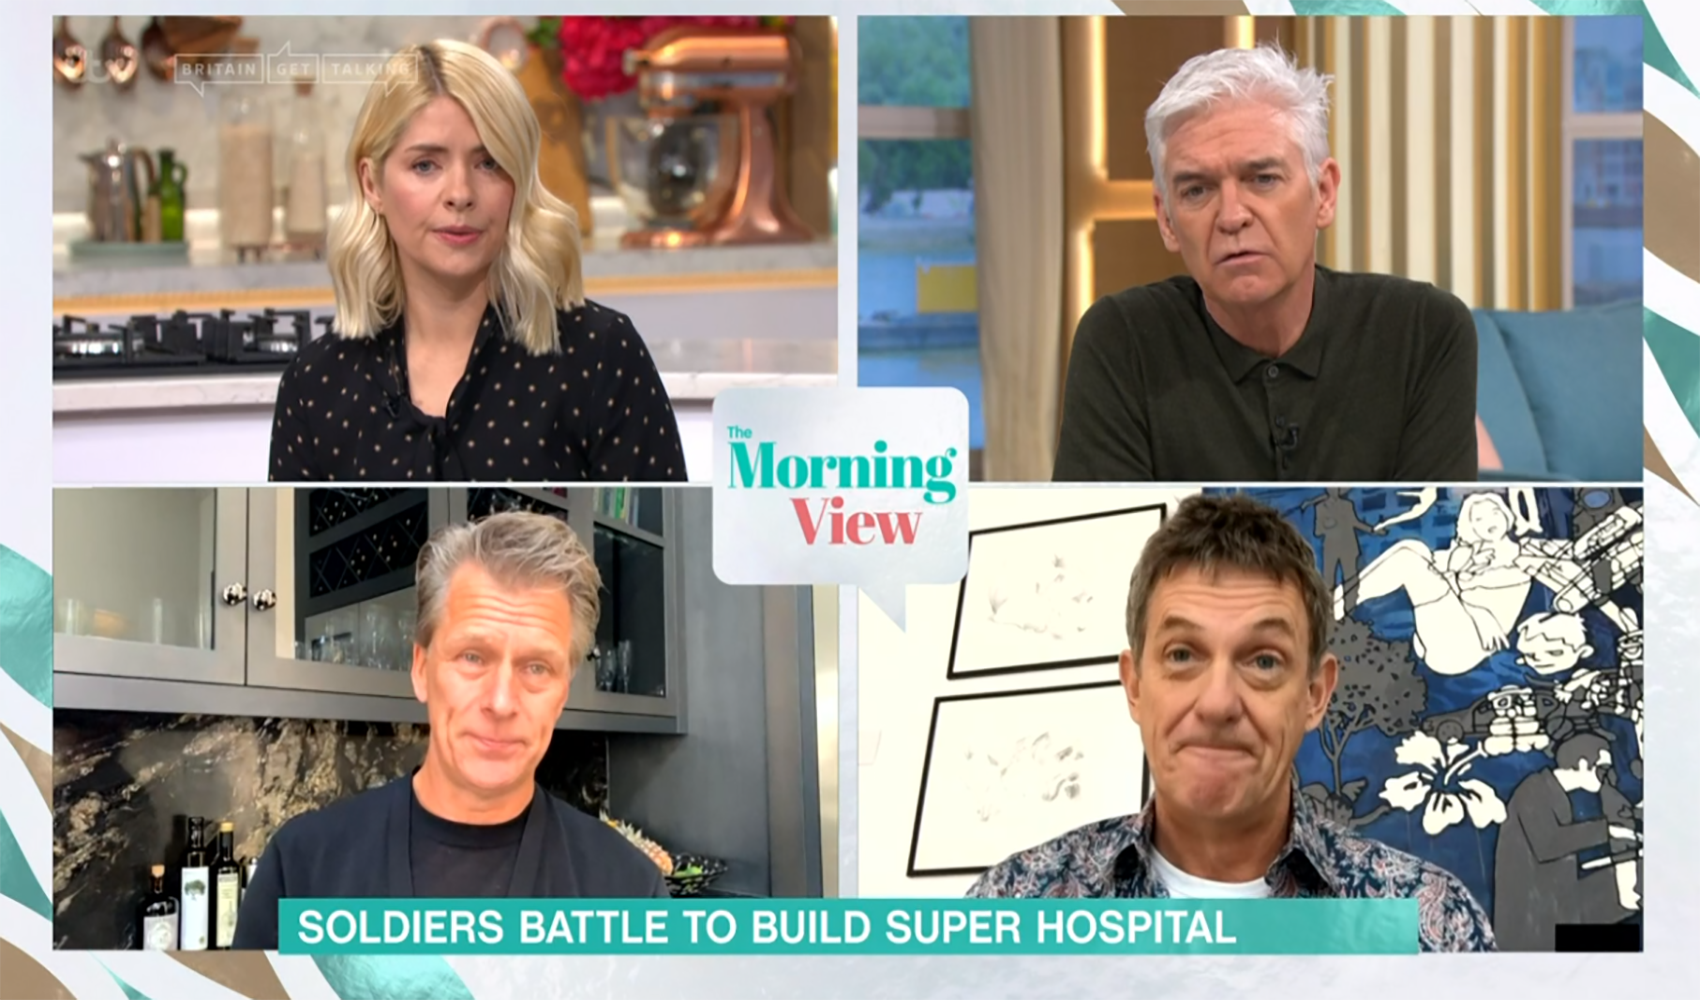 This Morning viewers in hysterics as Andrew Castle suffers embarrassing blunder live on air